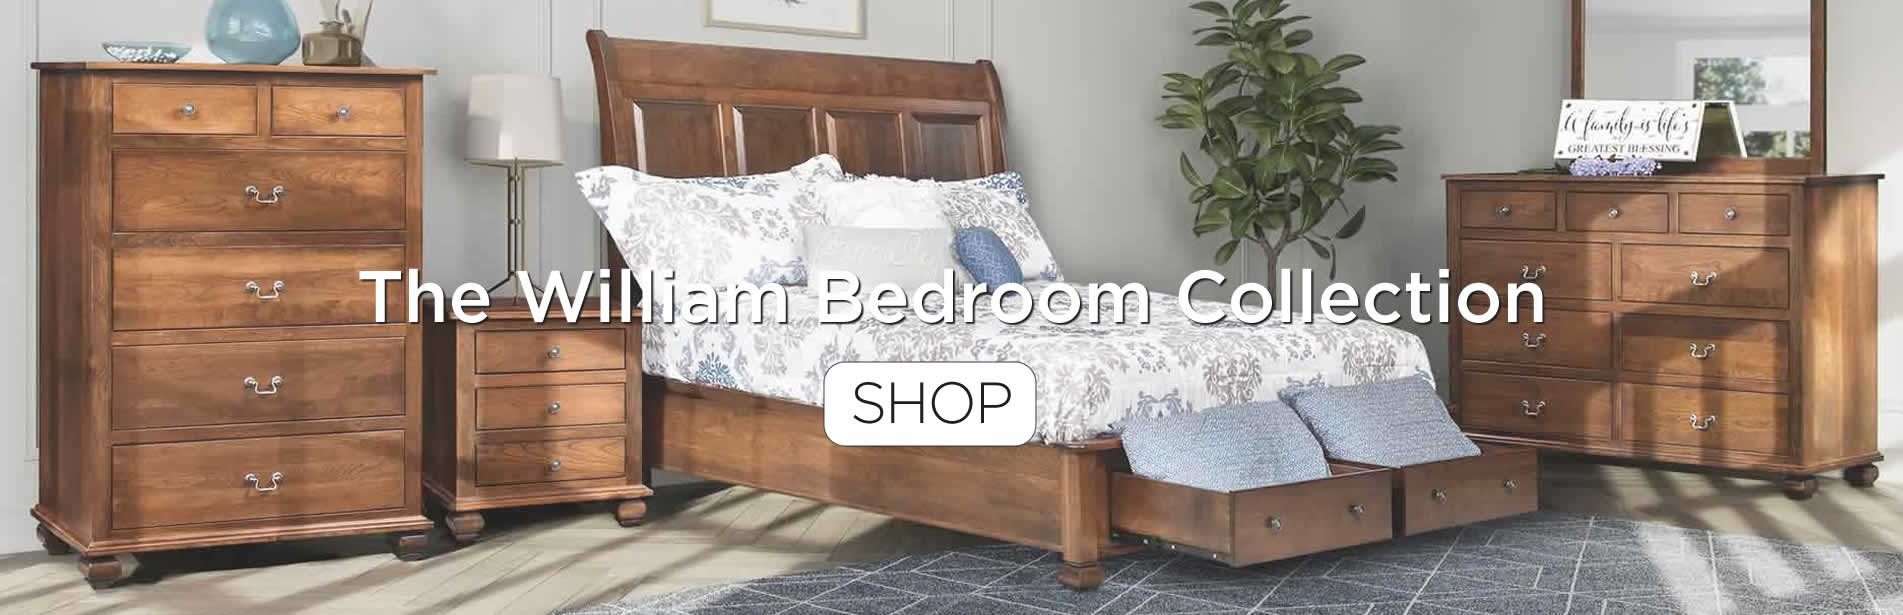 The William Bedroom Collection